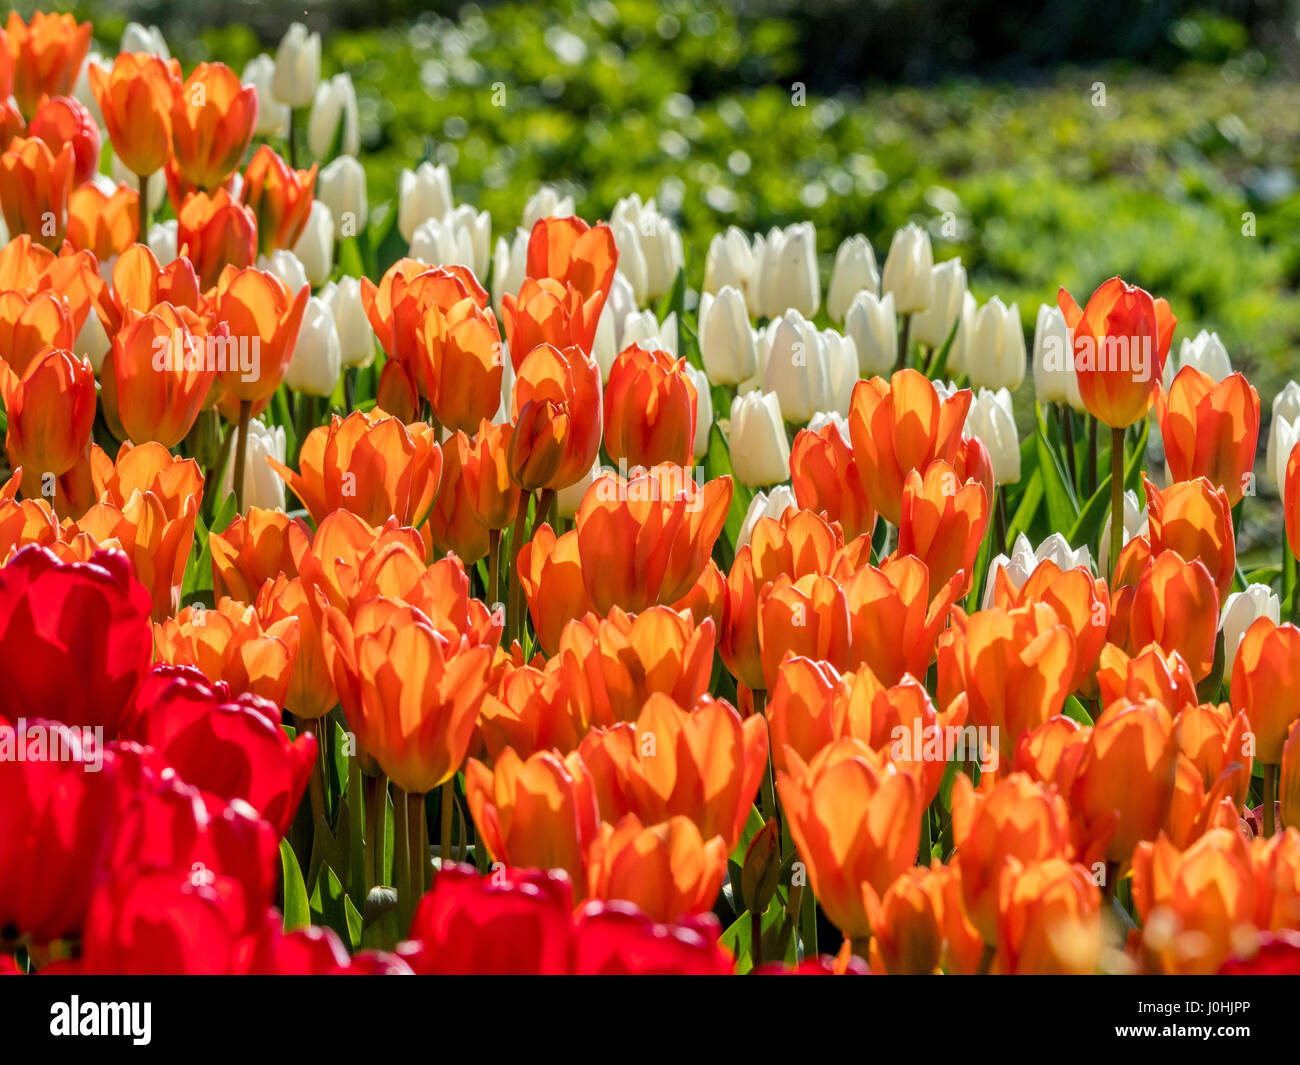 White, orange and red tulips in Spring flower bed outdoors - Stock Image